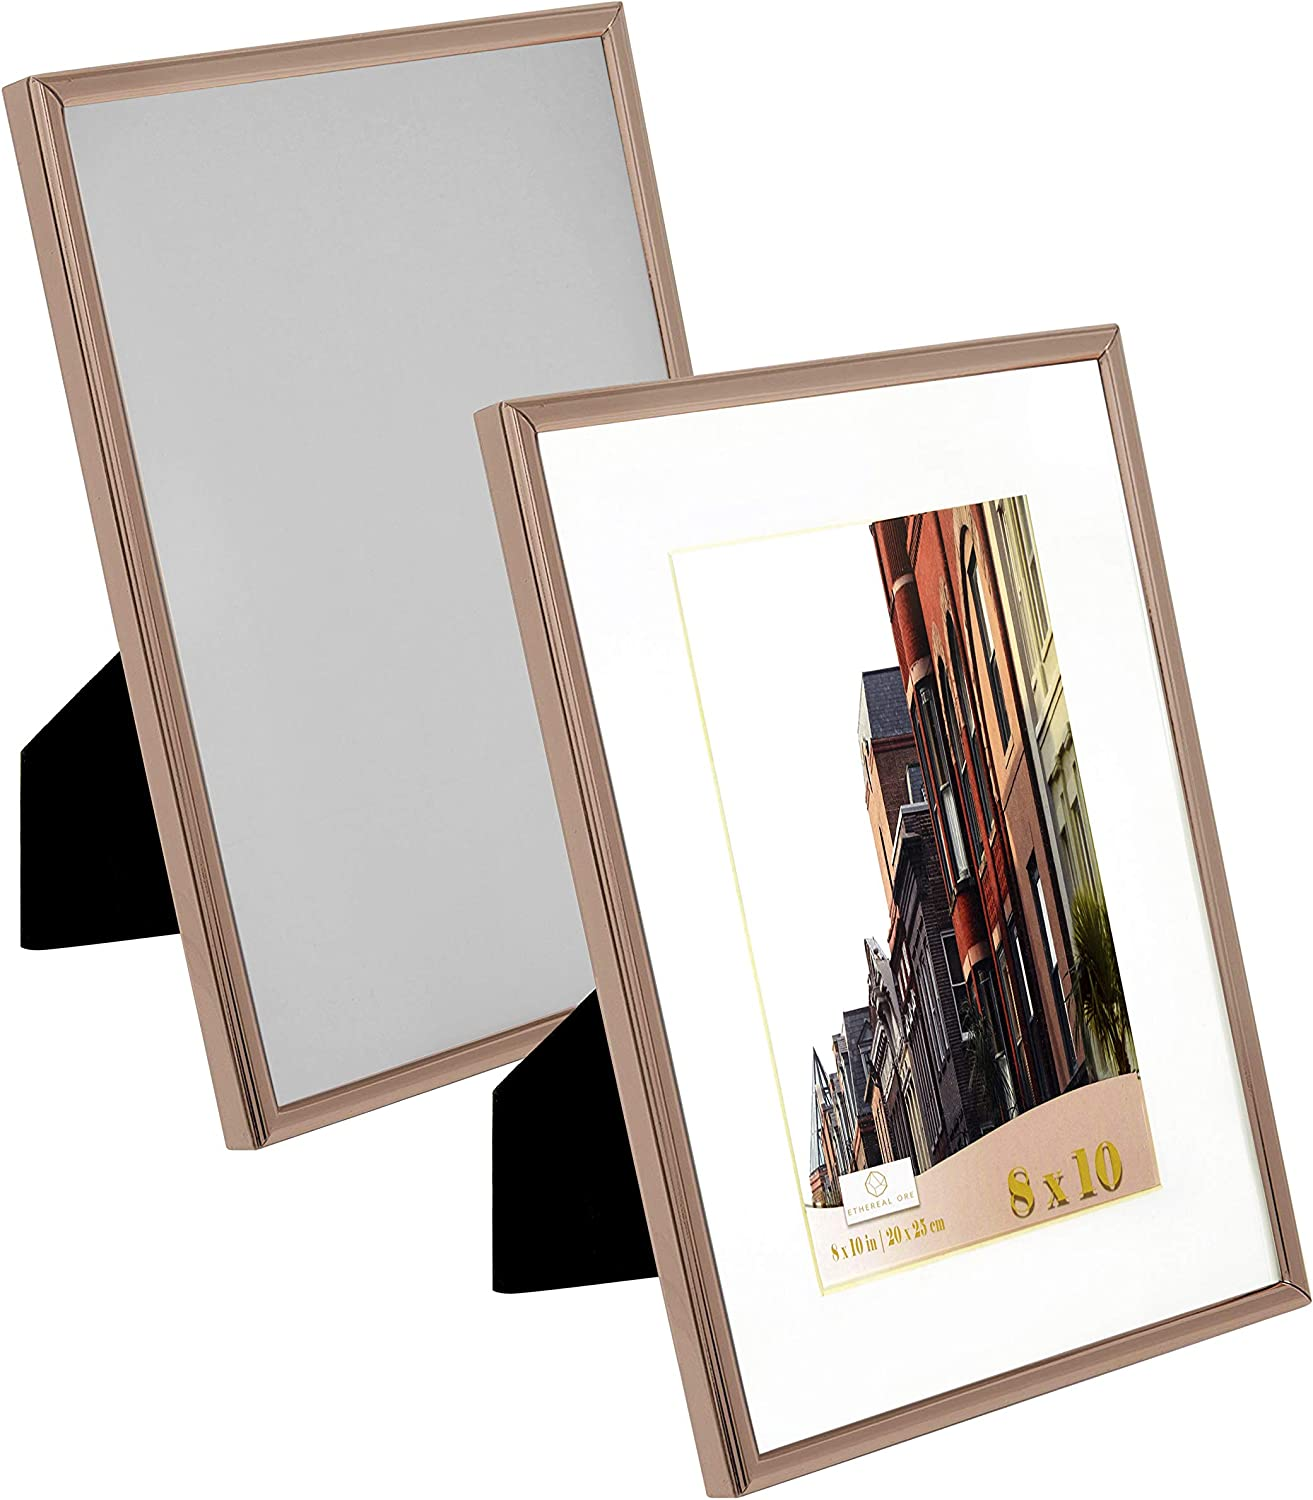 Ethereal Ore, 8x10 Rose Gold Picture Frames (2 Pack, Rose Gold), 8x10 Rose Gold Frame with White Mat, Stainless Steel Rose Gold Decor Wall Mount or Desk Top Rose Gold Decorations